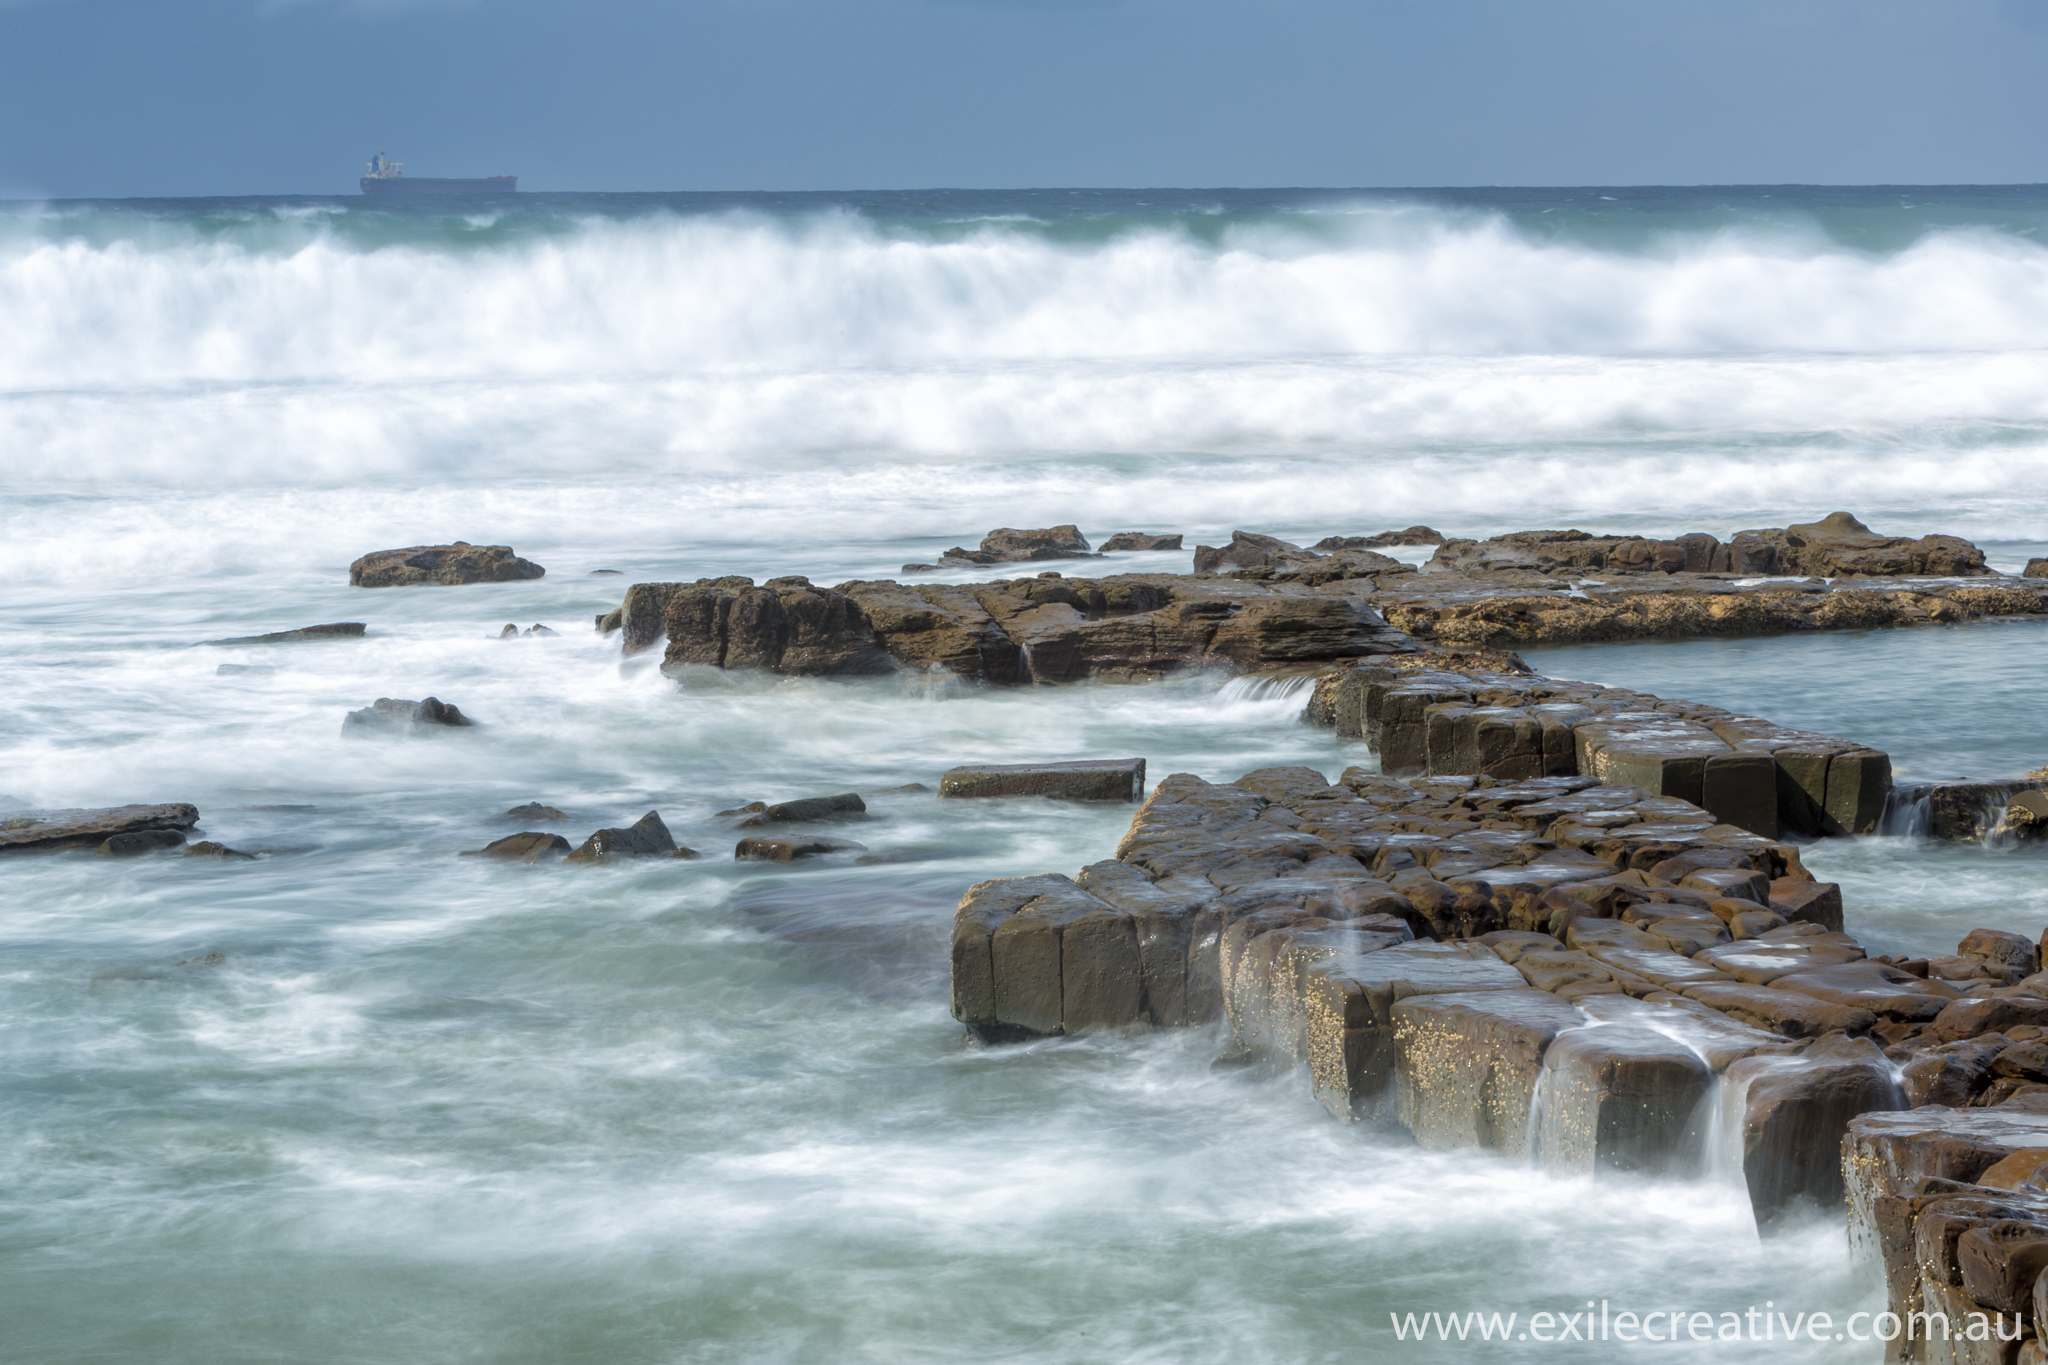 The rocks at Merewether Beach